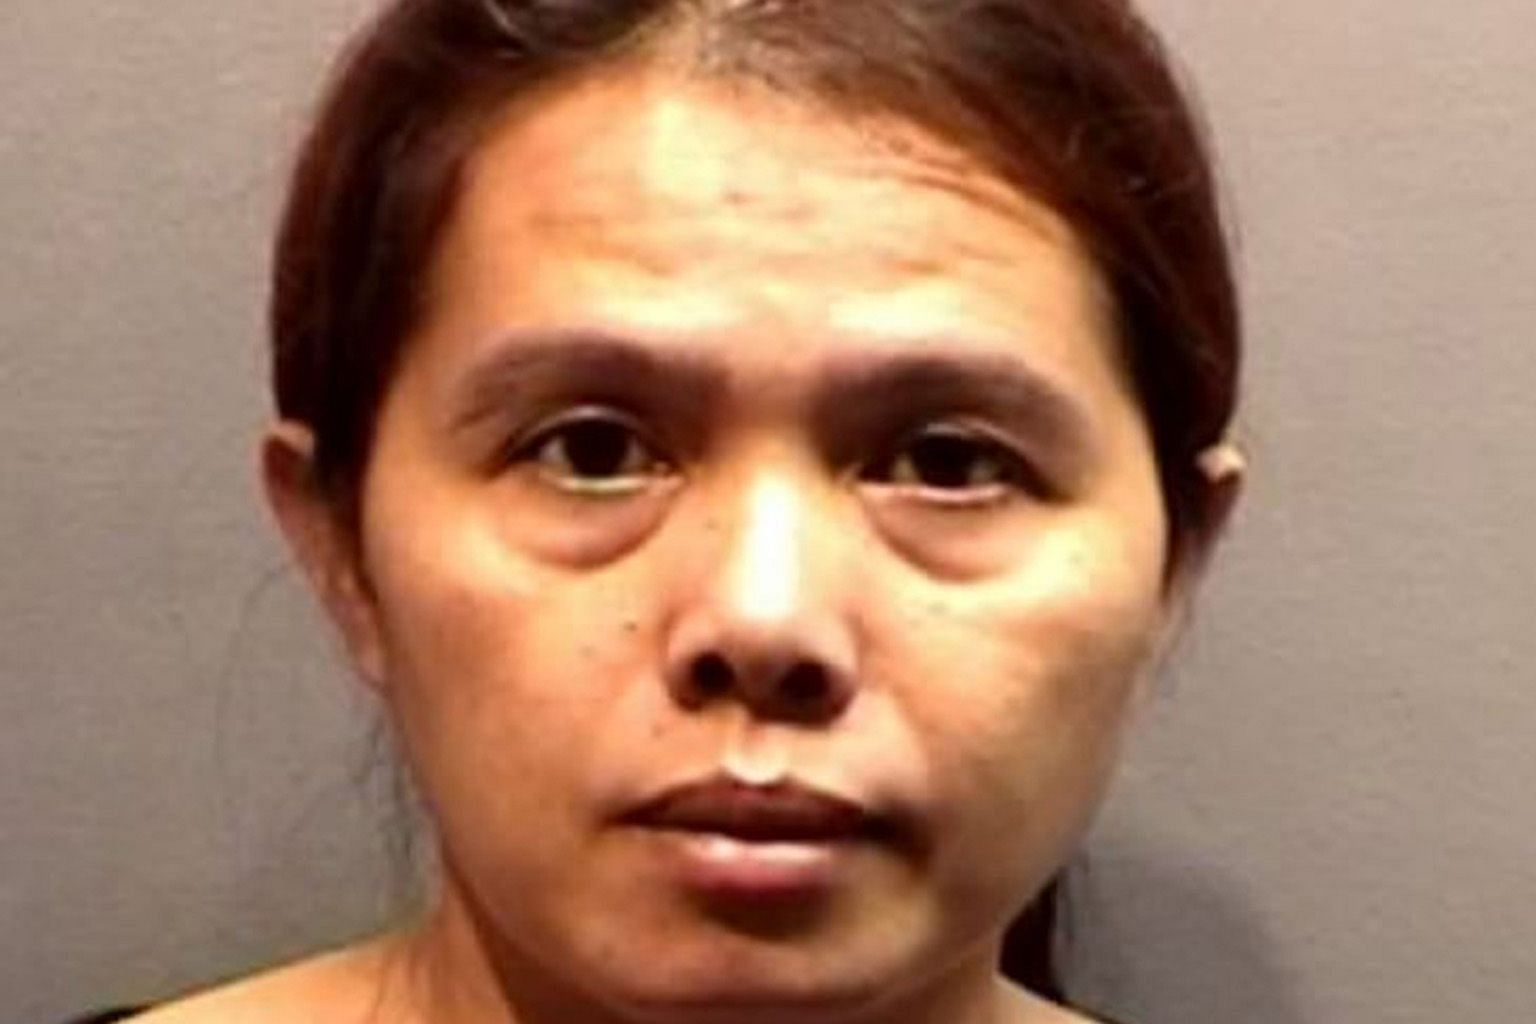 Namih Nurlaela was sentenced to a year's jail yesterday. Only $28,350 worth of goods she stole were recovered.